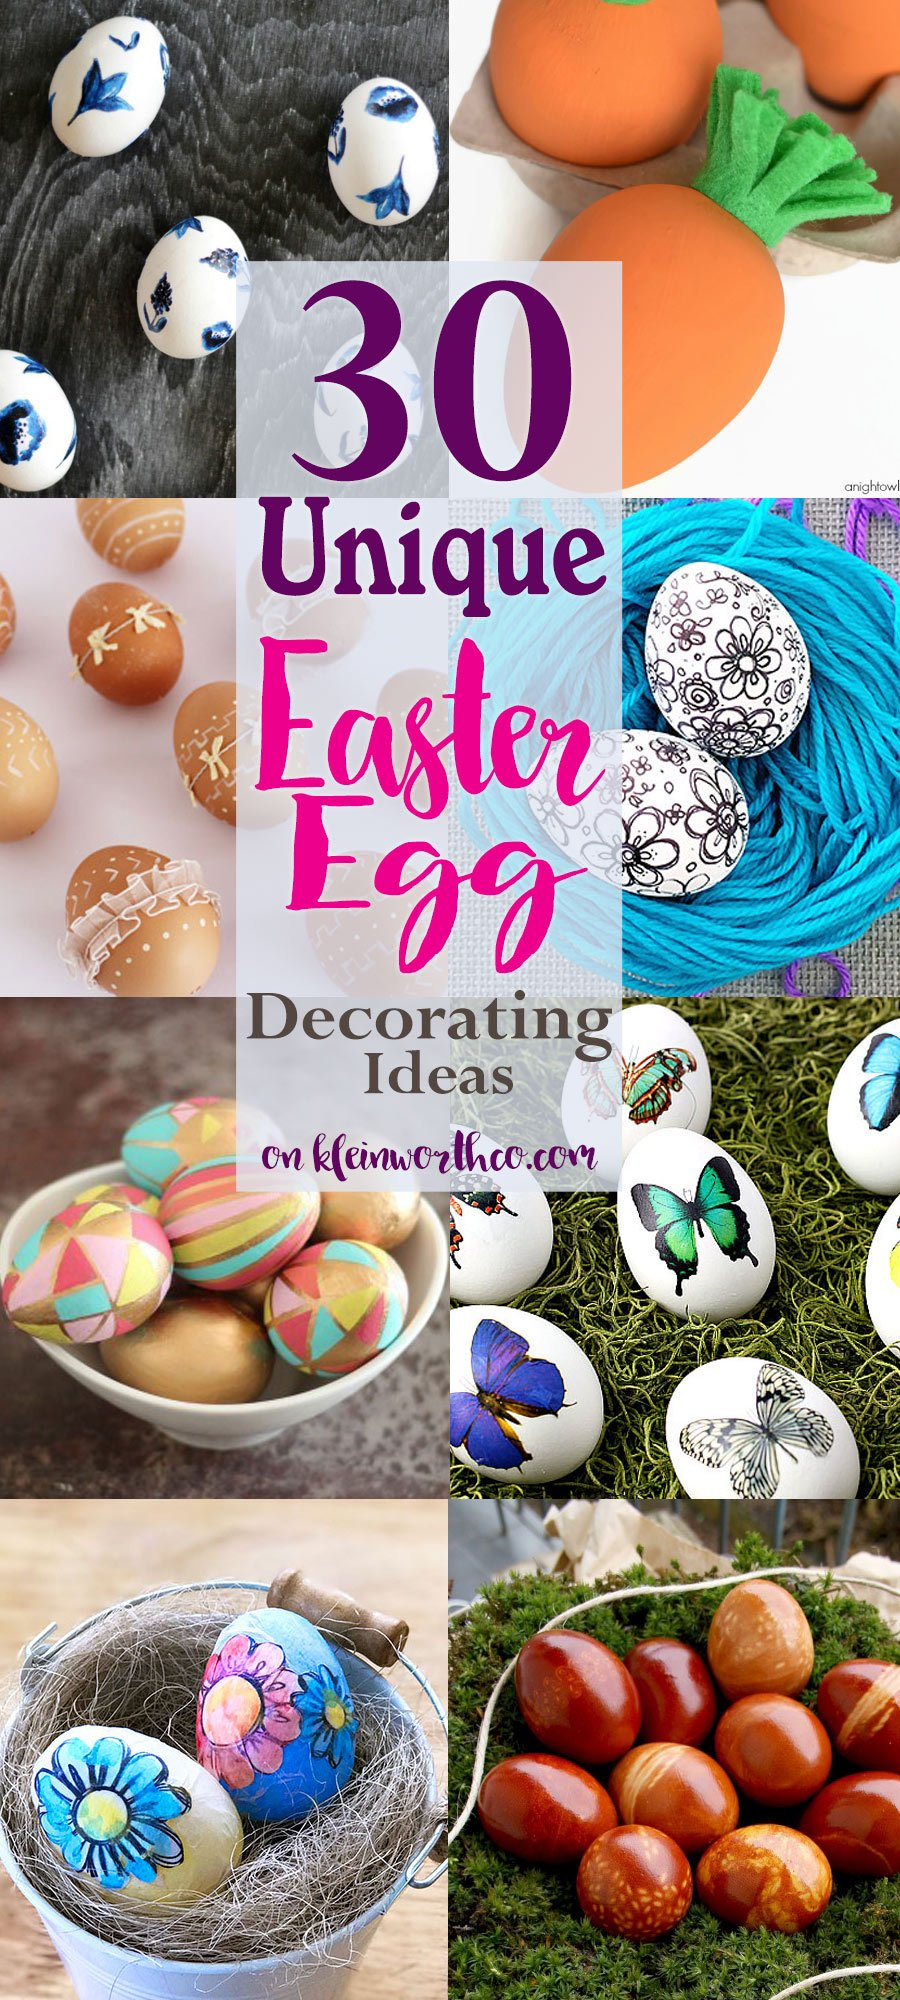 30 Unique Easter Egg Decorating Ideas - Kleinworth & Co